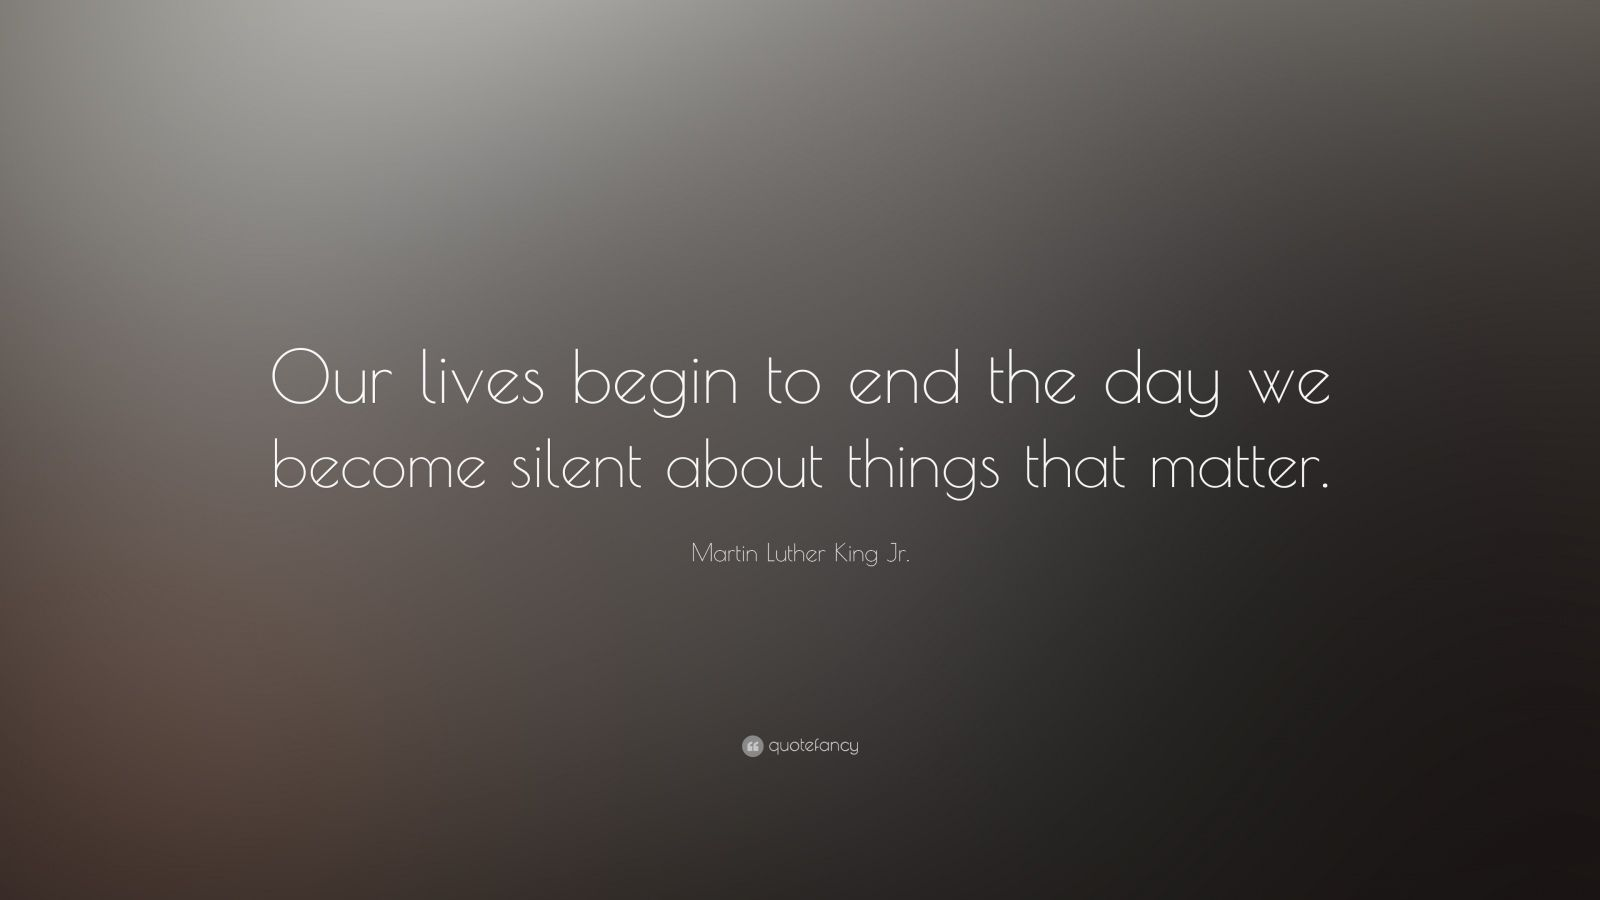 our lives begin to end the day we become silent about the things that matter martin luther king jr Martin luther king jr speech on pulpit, selma, al, march 8, 1965 often condensed into our lives begin to end the day we become silent about things that matter.